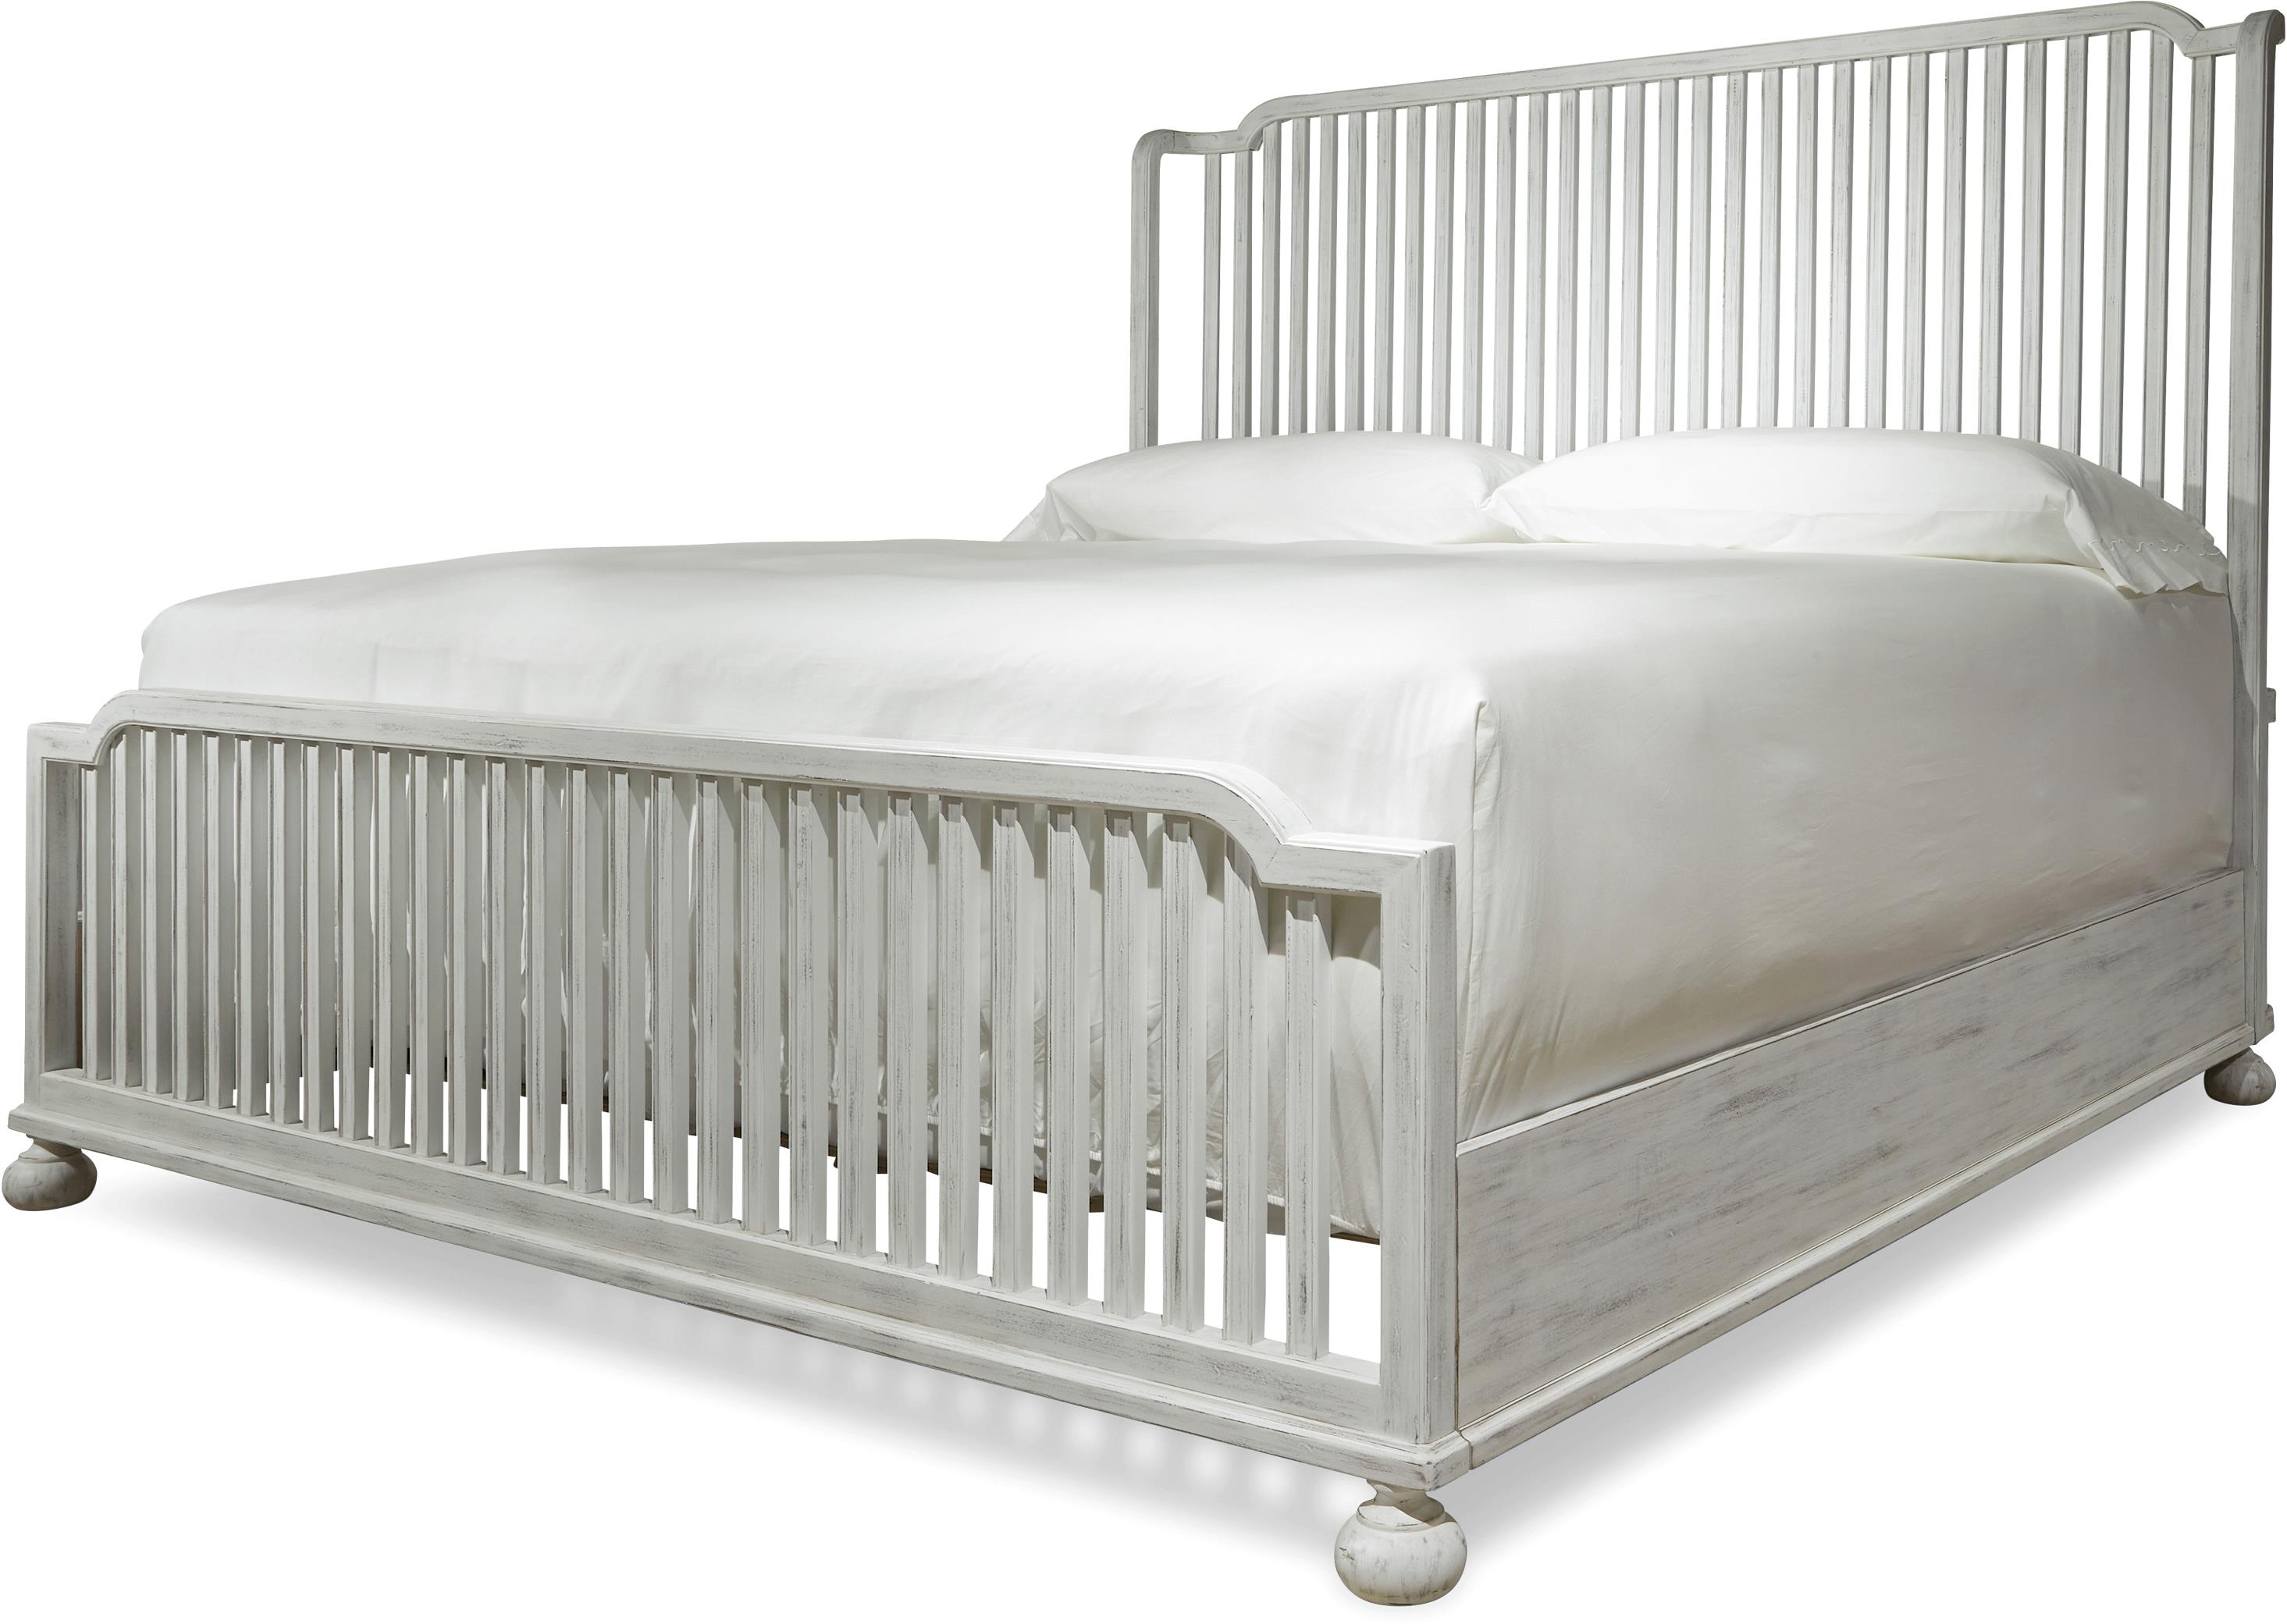 Paula Deen by Universal Dogwood The Tybee Island Queen Bed - Item Number: 597250B